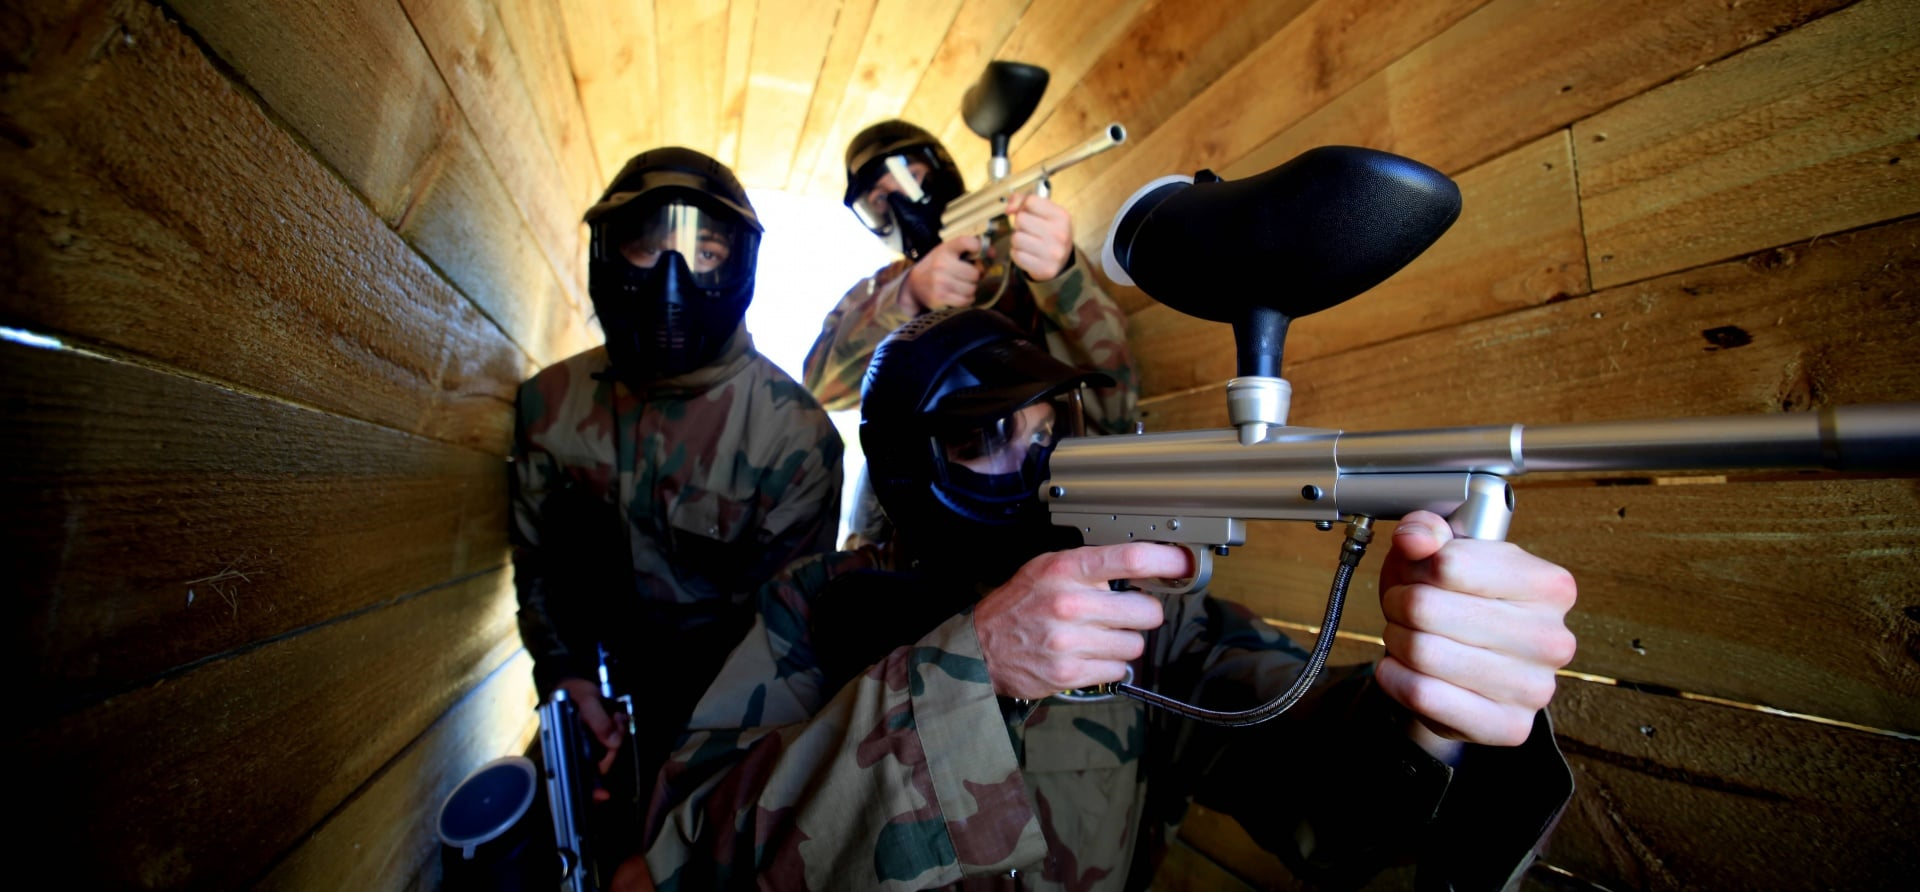 Full Day Paintballing Experience plus 100 Paintballs pp-1